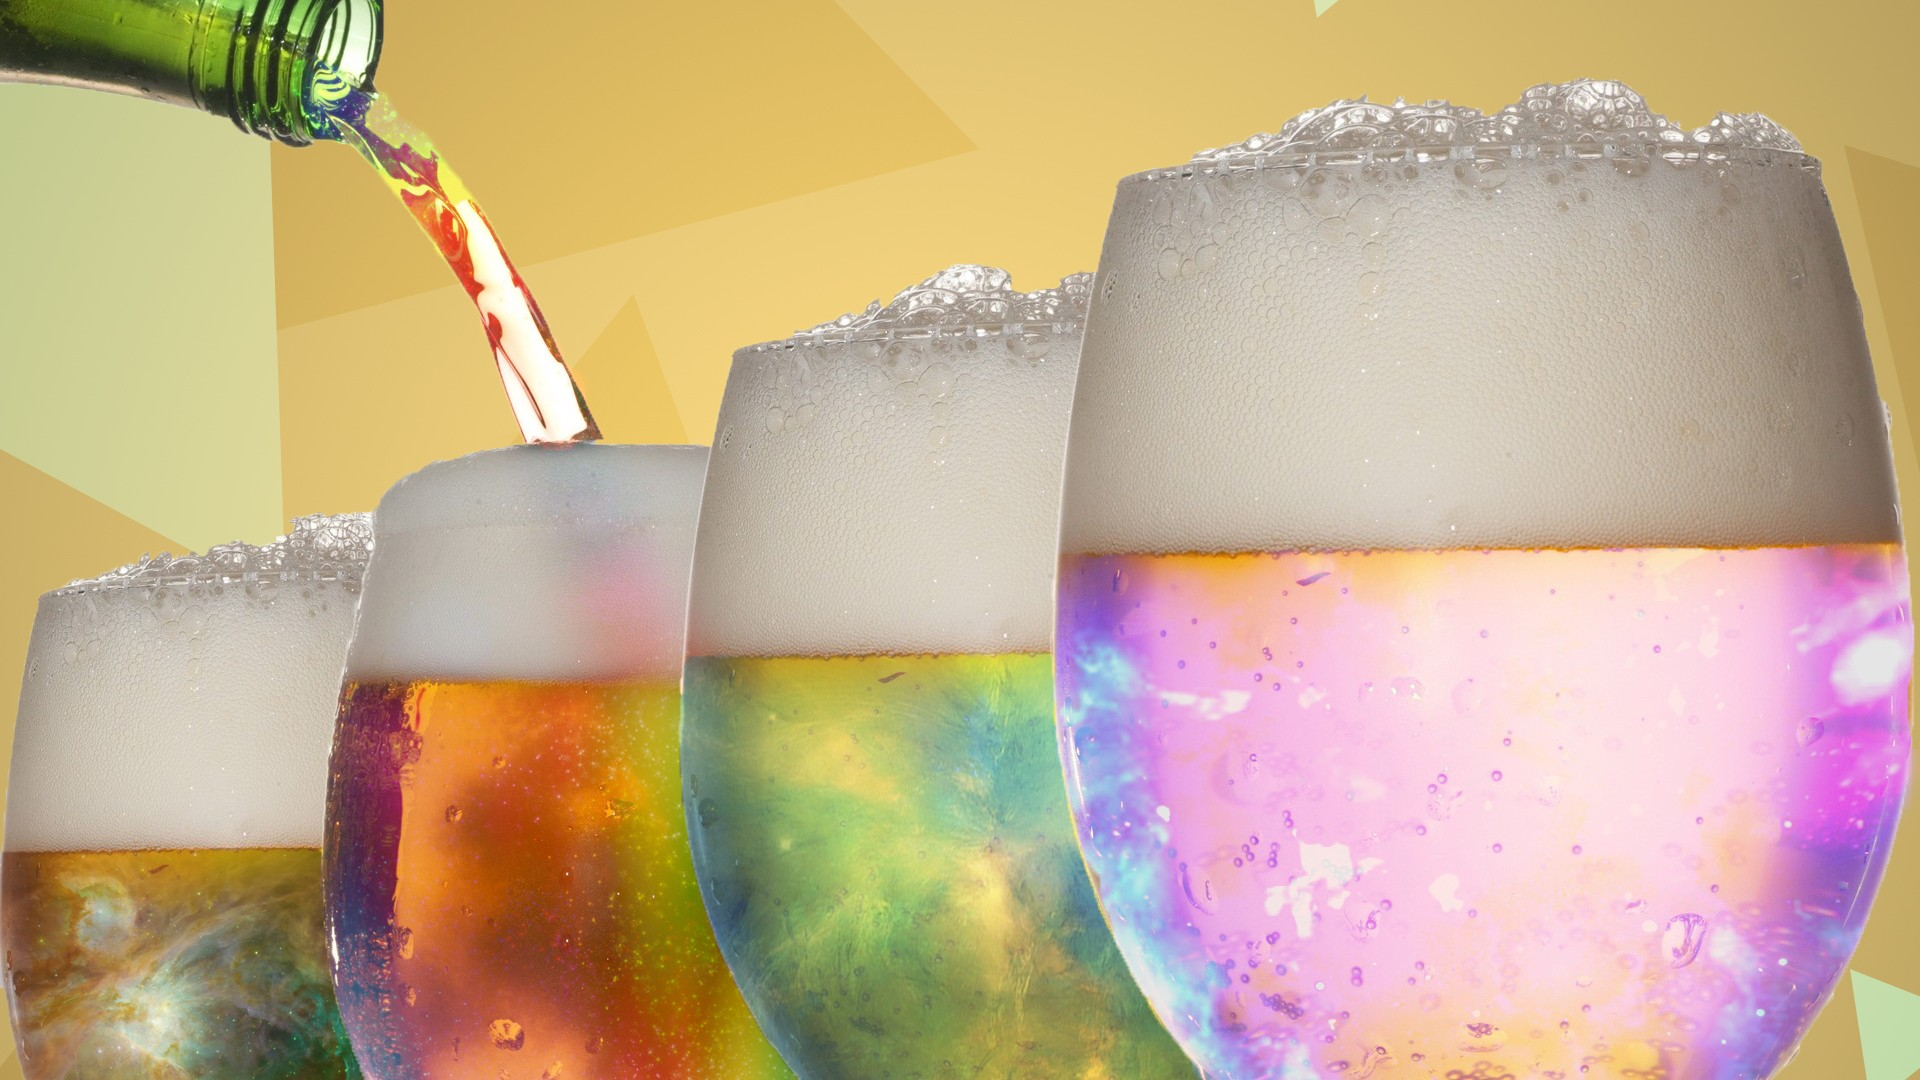 Wallpaper Colorful Beer glass